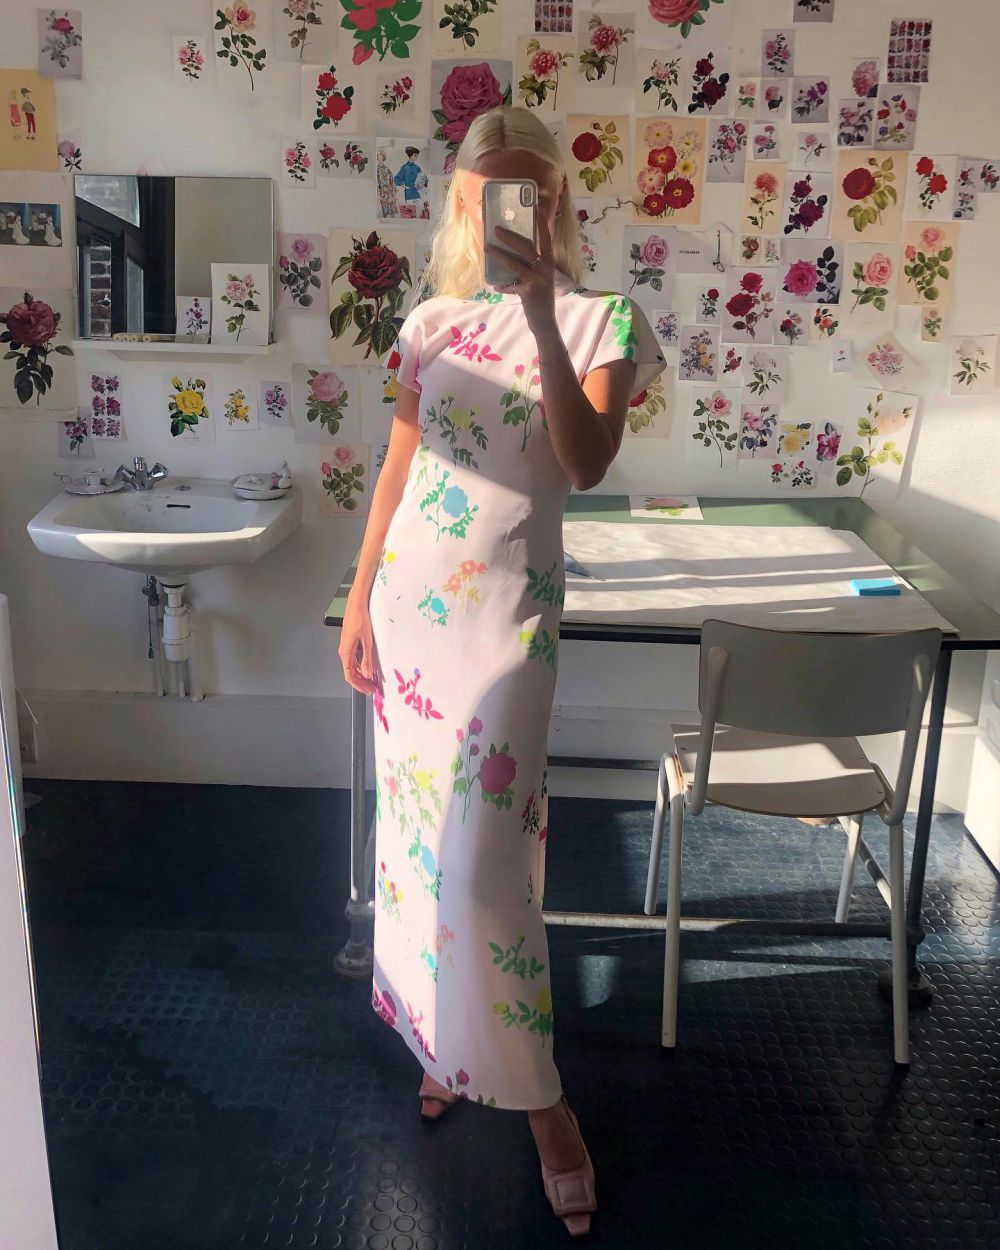 HOW IS IT SEPTEMBER ALREADY? ~ ENJOYING THOSE LATE SUMMER MOMENTS. 💘 ~ WEARING THE BLUSH VALENTINE DRESS WITH A COLLAGE OF MY FLORAL DRAWINGS. 🌼🌸🌺 #HS20